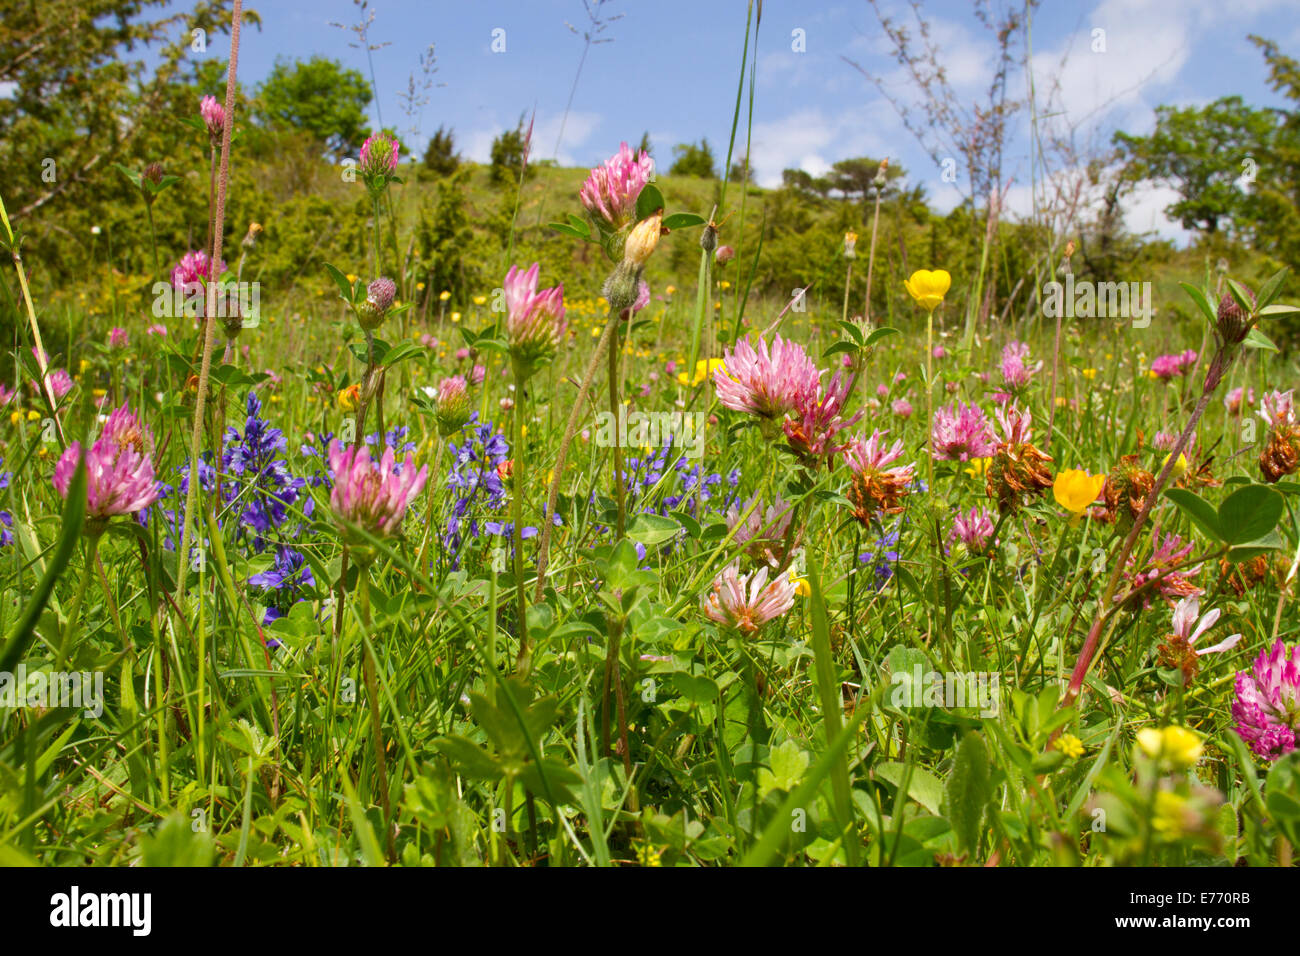 Flowery grazing meadow and Juniper scrub in the foothills of the Pyrenees, with Red Clover, Milkwort, etc. - Stock Image